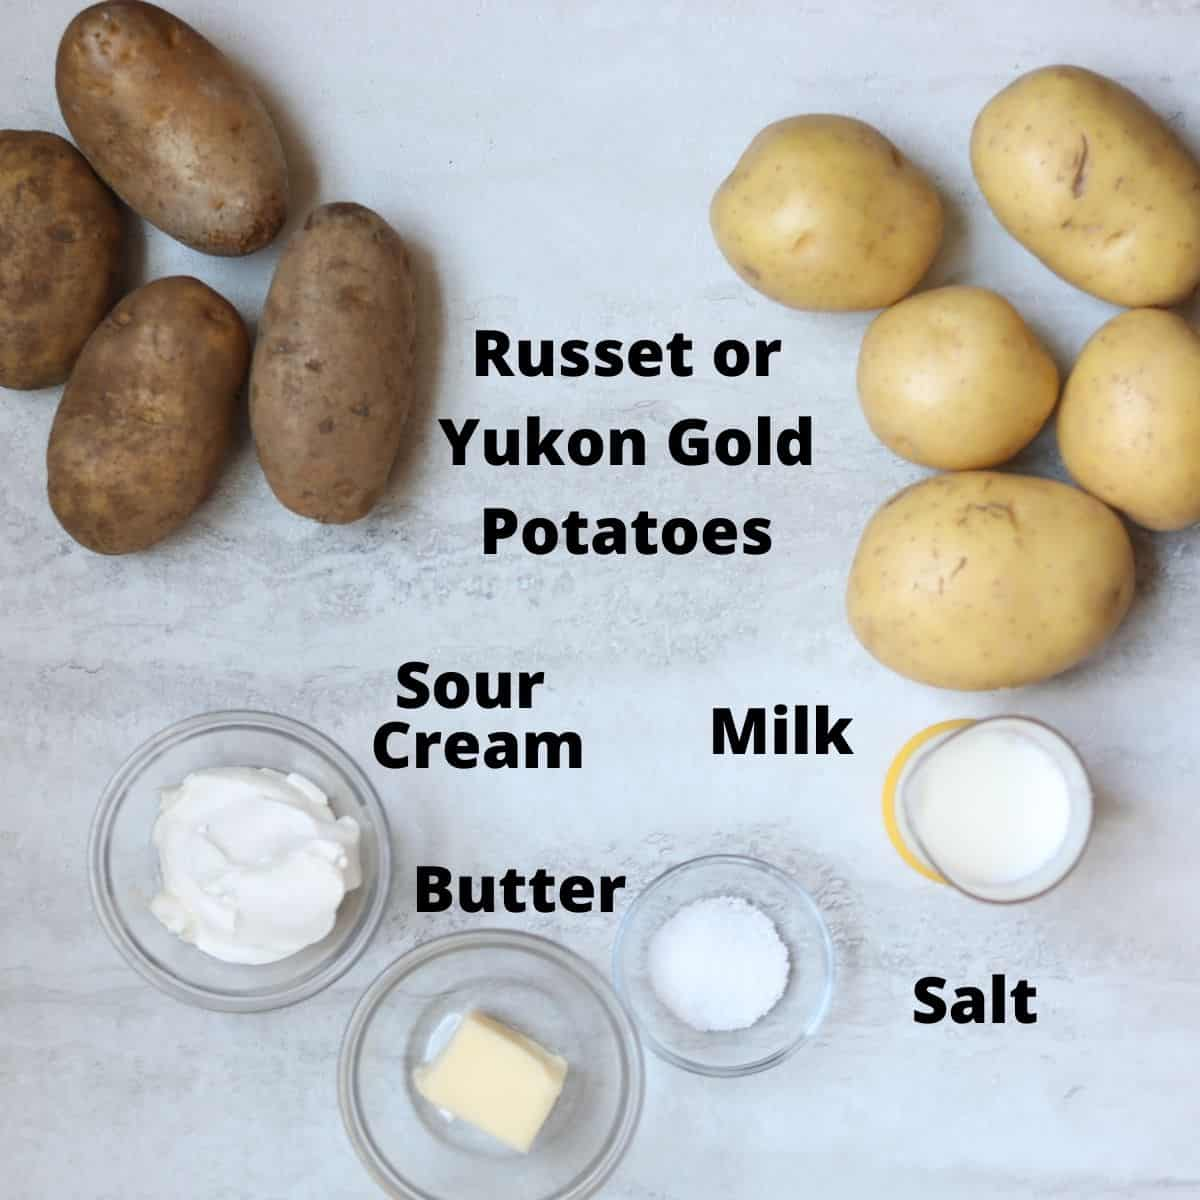 Ingredients for instant pot mashed potatoes labeled on white counter.